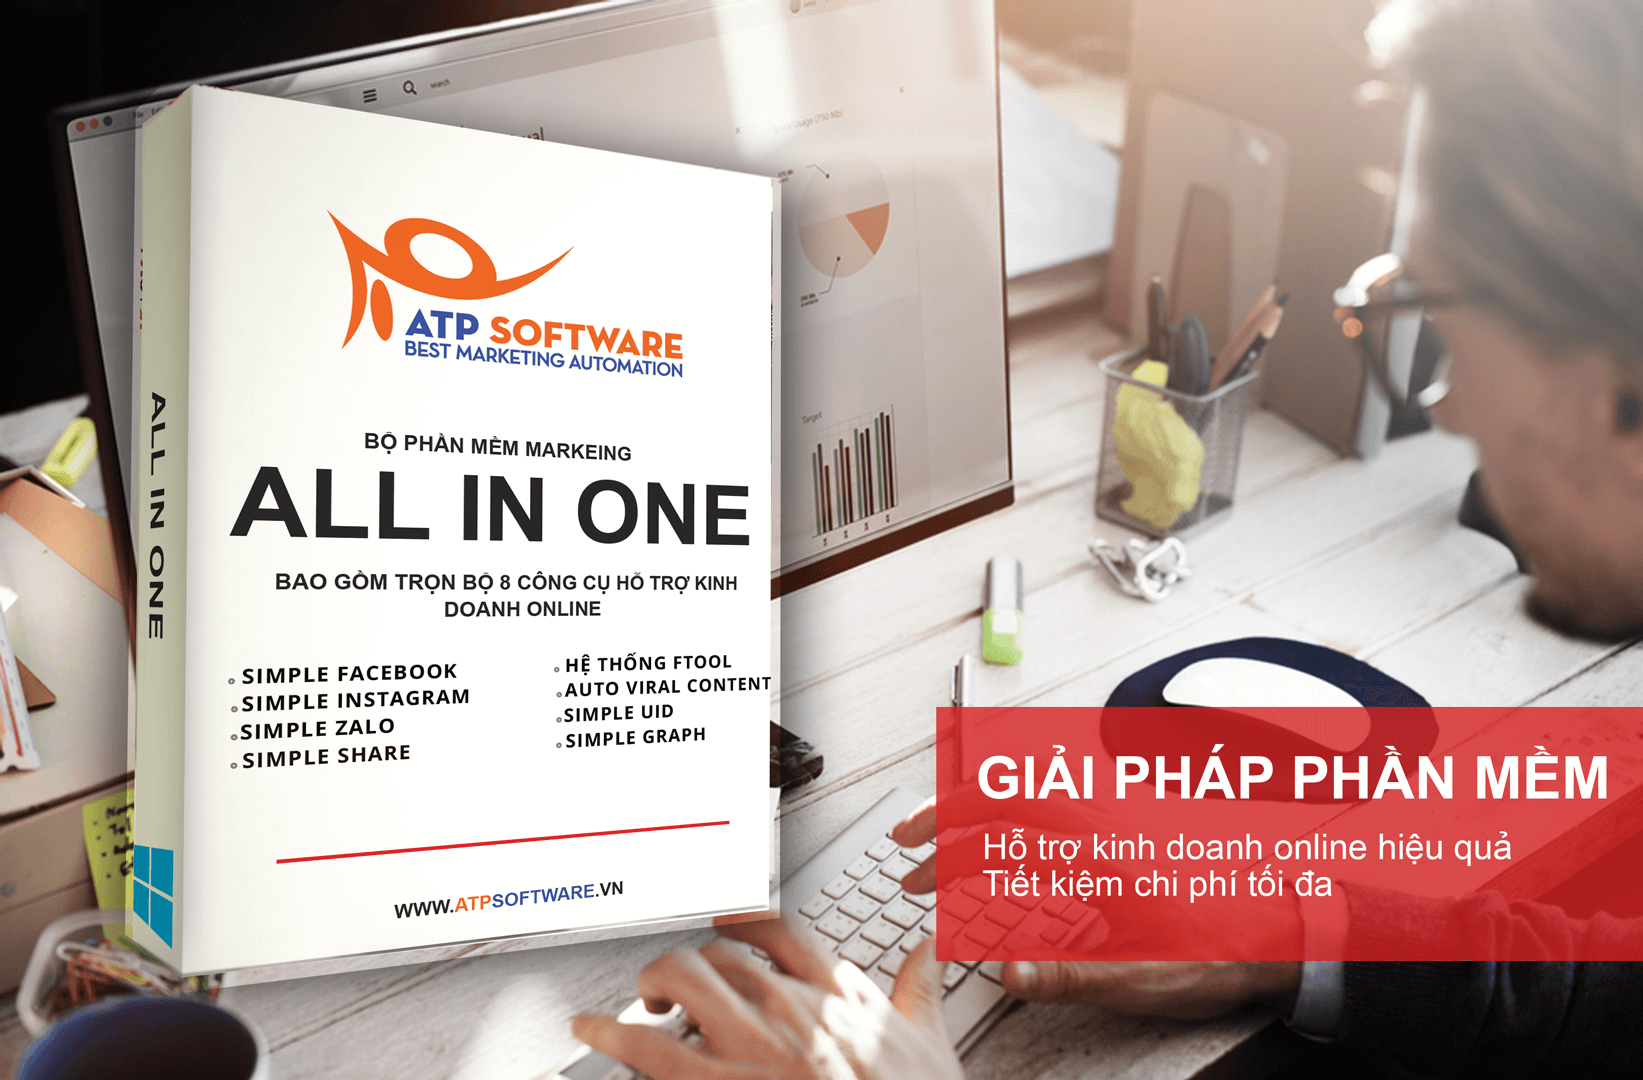 All-In-One - image Allinone_fix1 on https://atpsoftware.vn